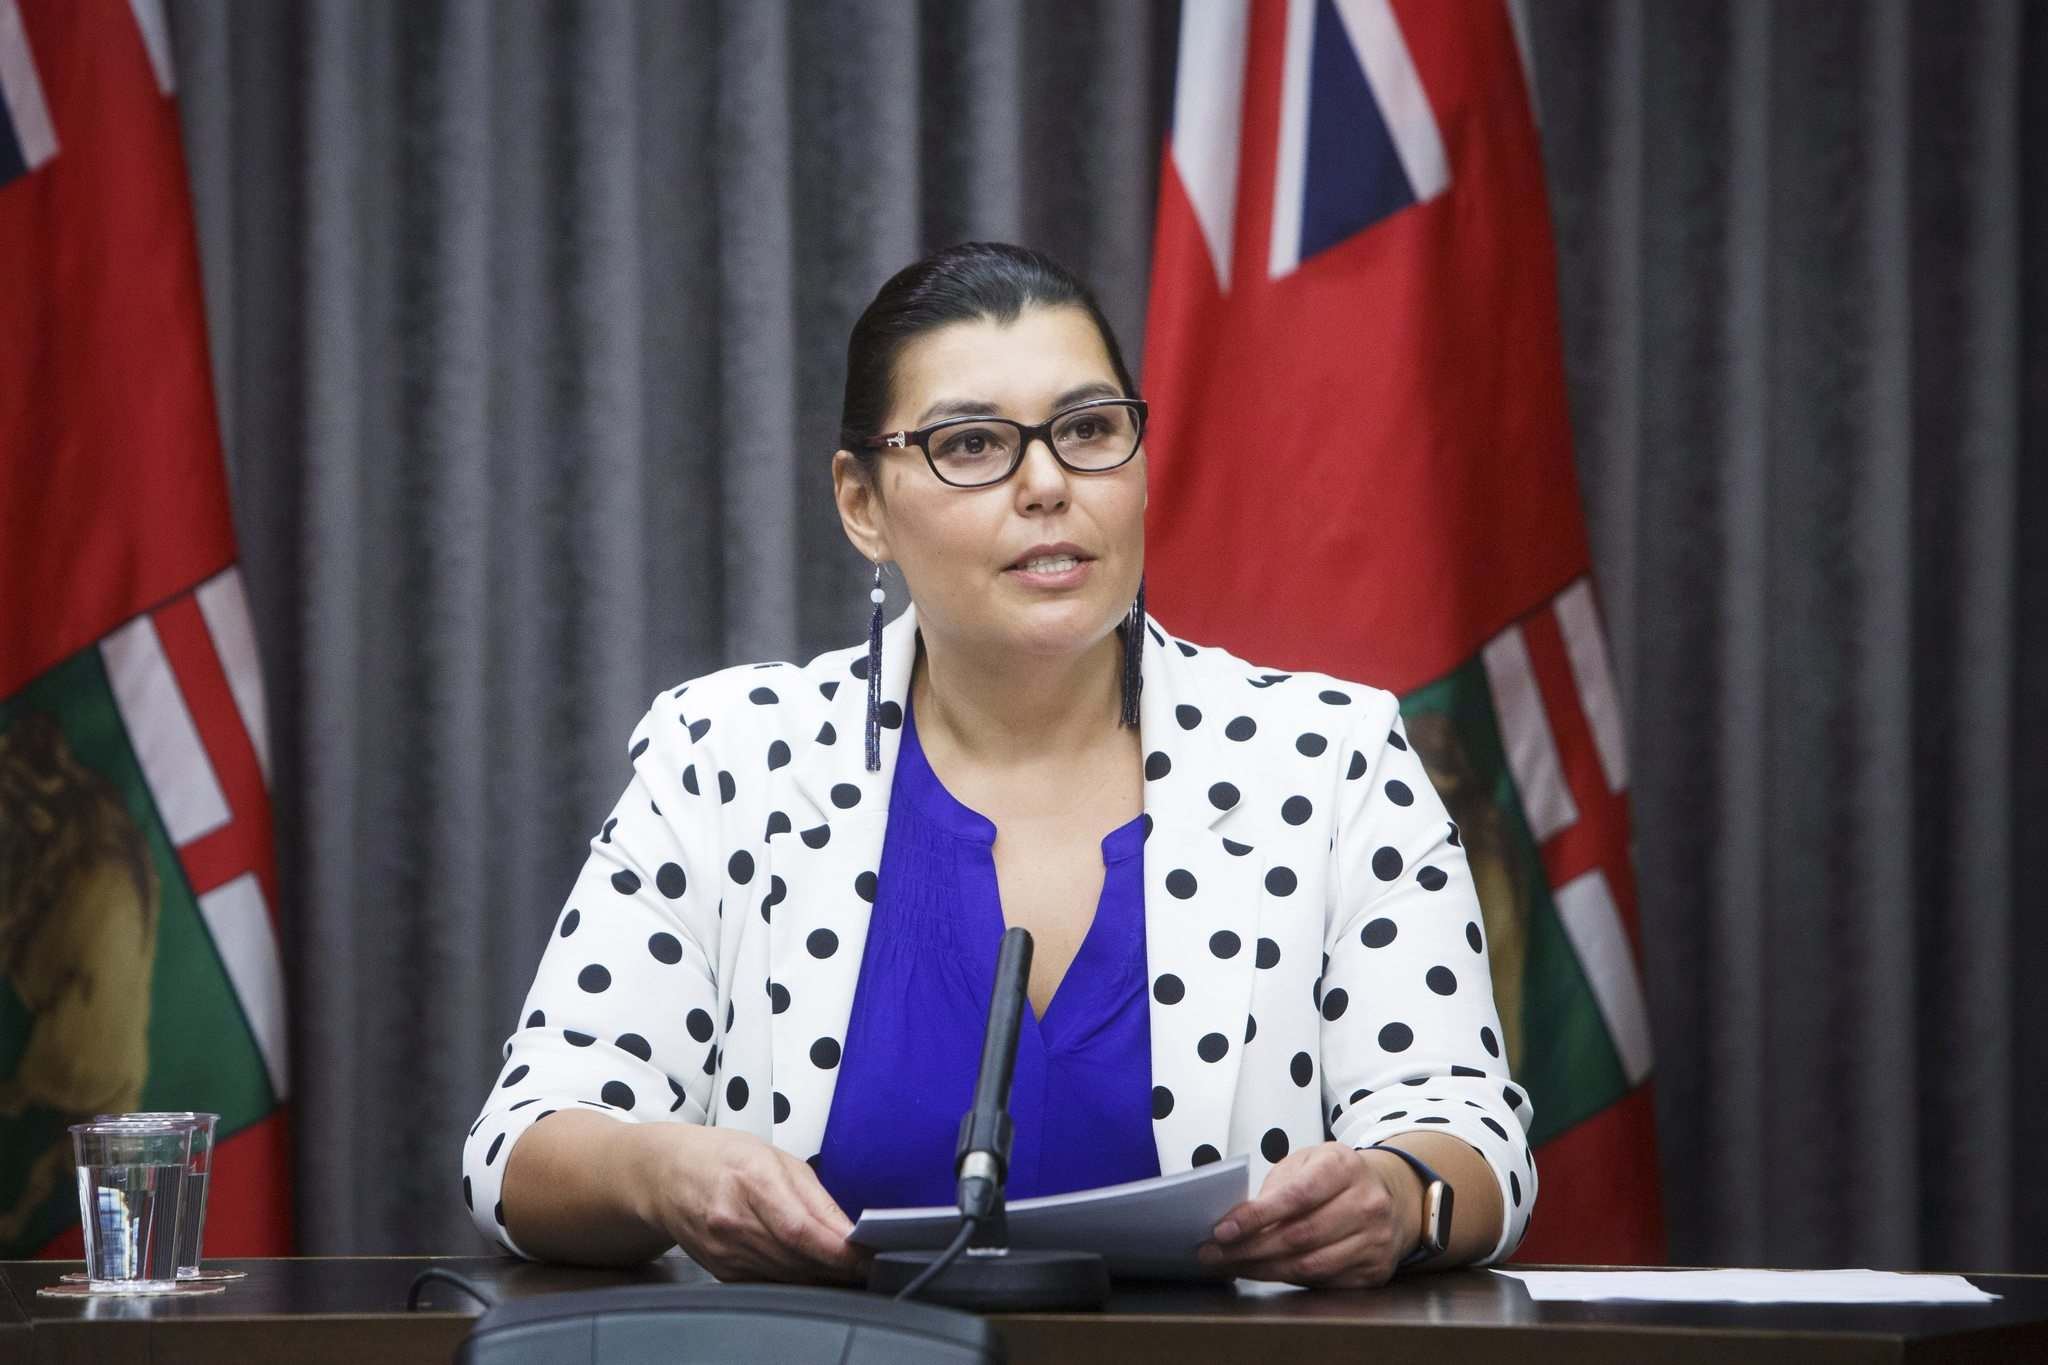 More needs to be done to address the wider systemic issues contributing to poor health outcomes among racialized people, says Dr. Marcia Anderson, medical lead of the First Nations Pandemic Response Co-ordination Team. (Mike Deal / Winnipeg Free Press files)